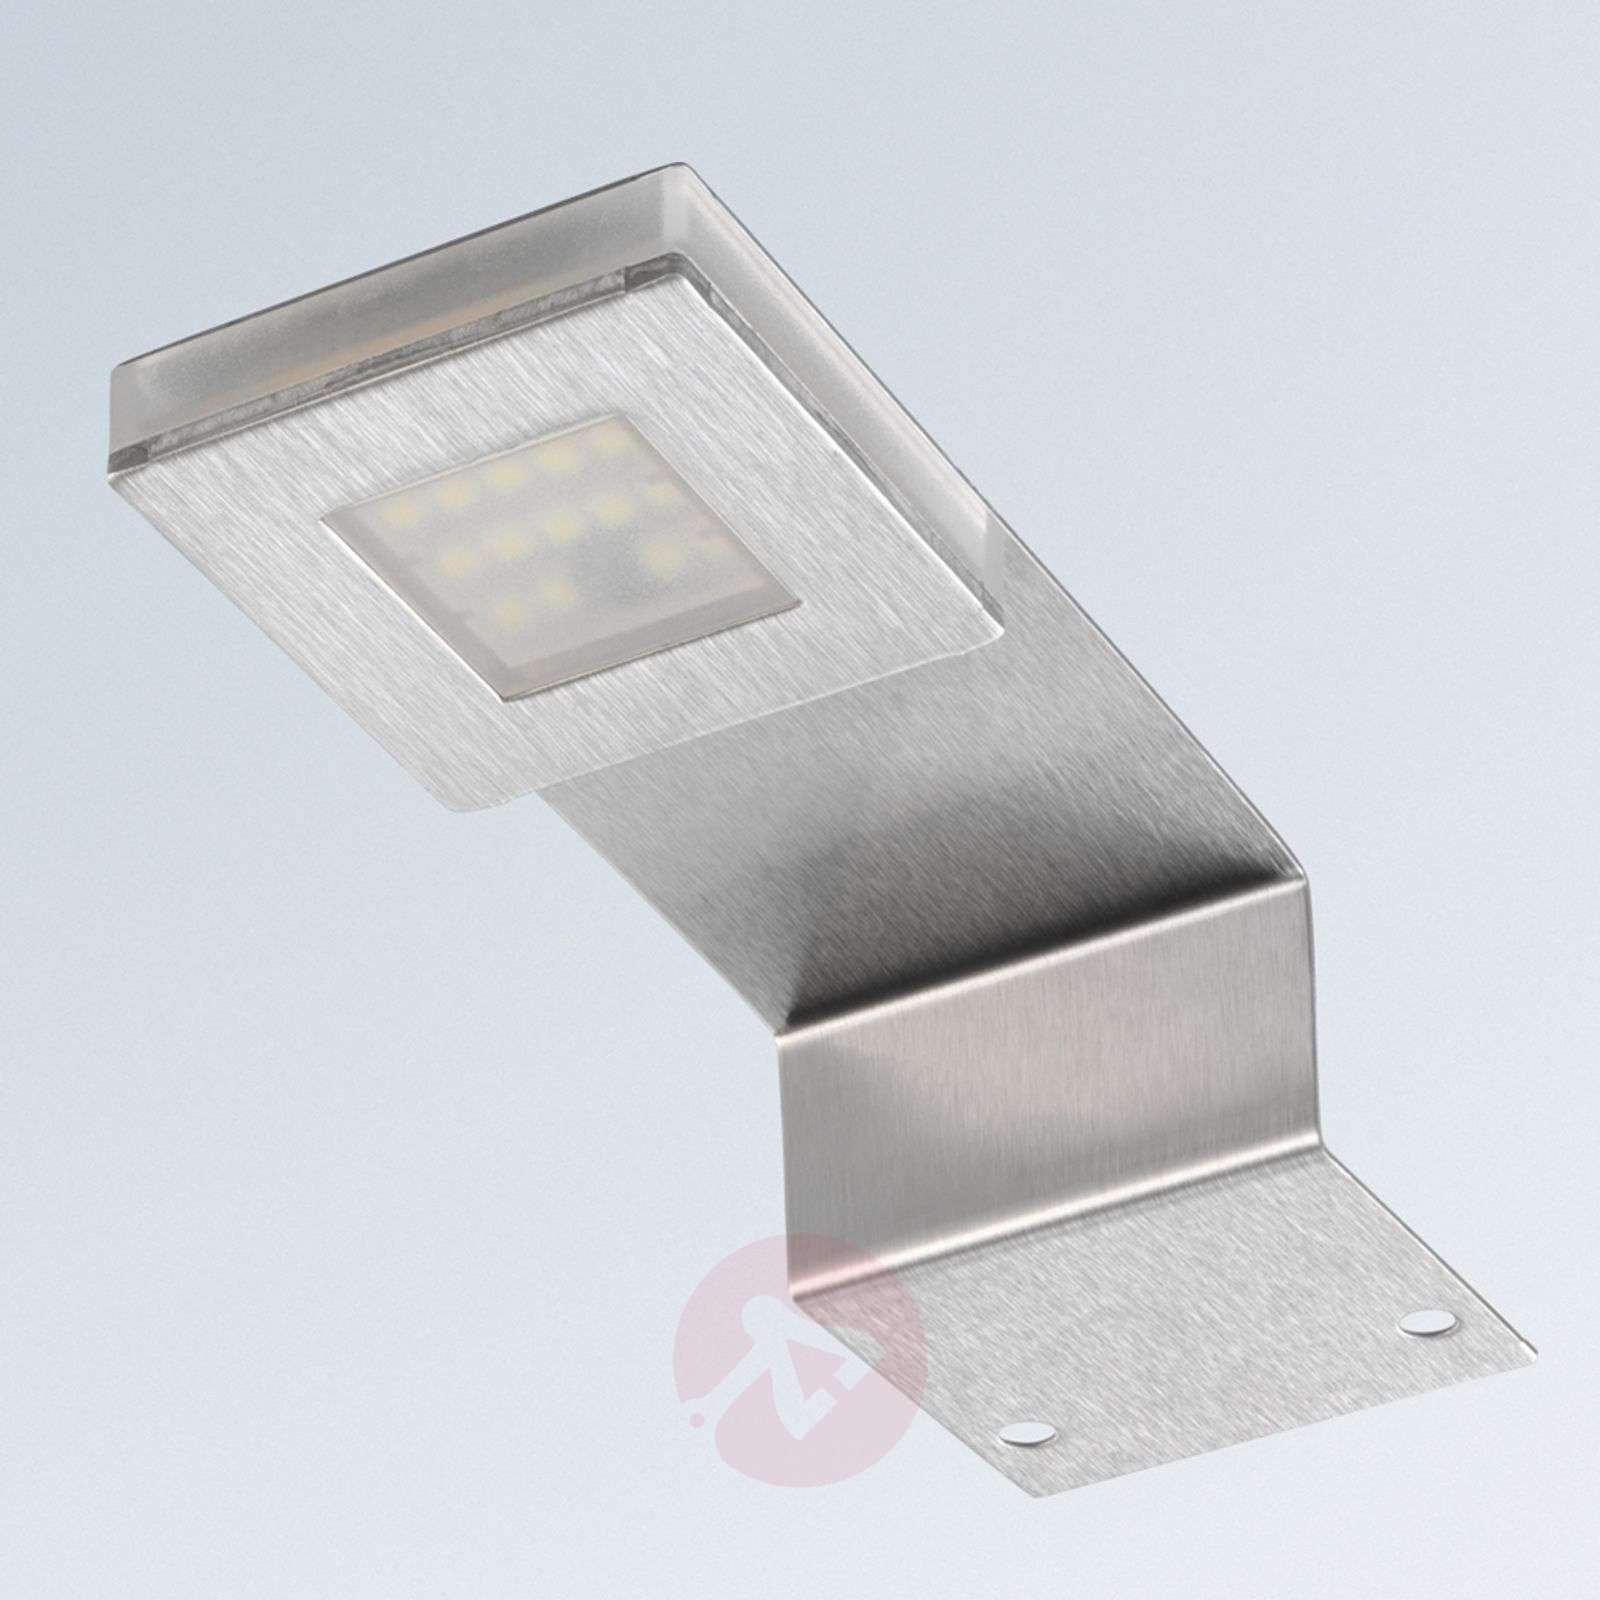 New where to Buy Small Led Lights